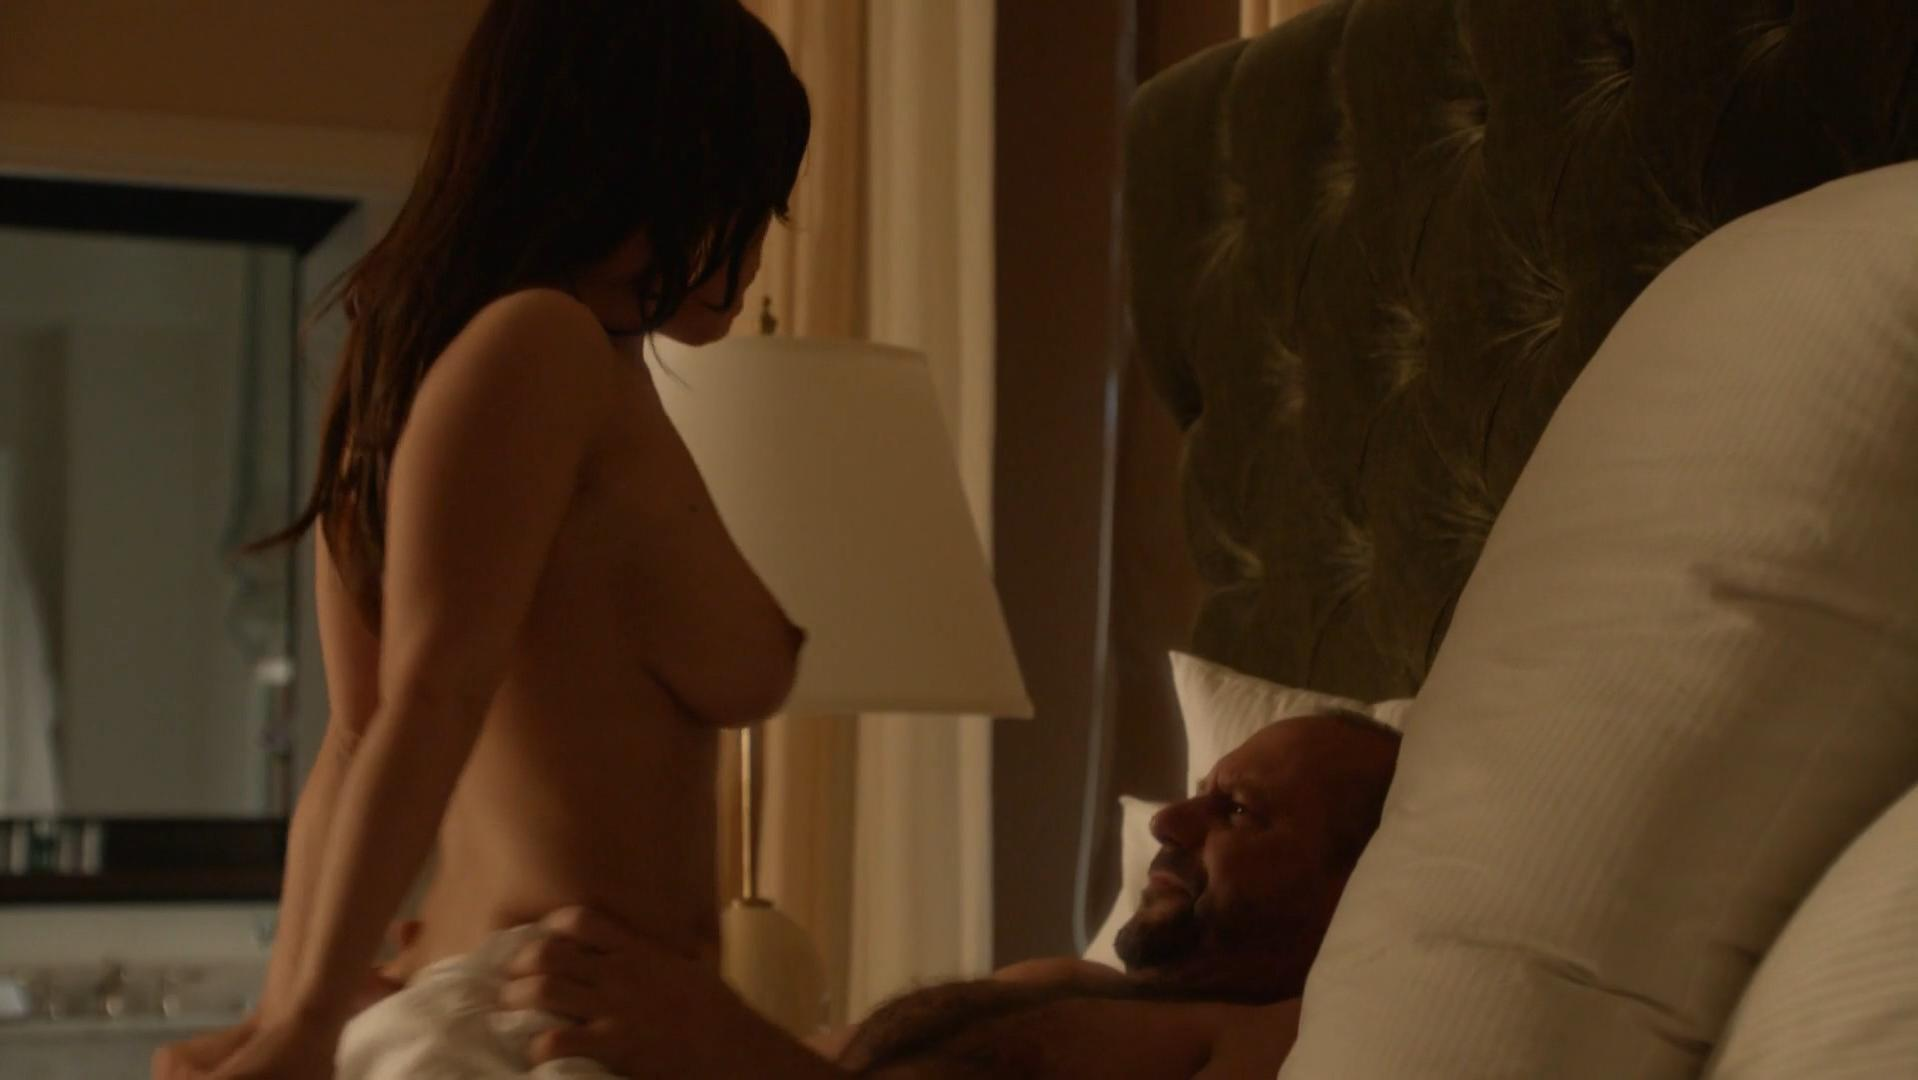 Marina Tsevas nude - Transporter The Series s01e02 (2012)